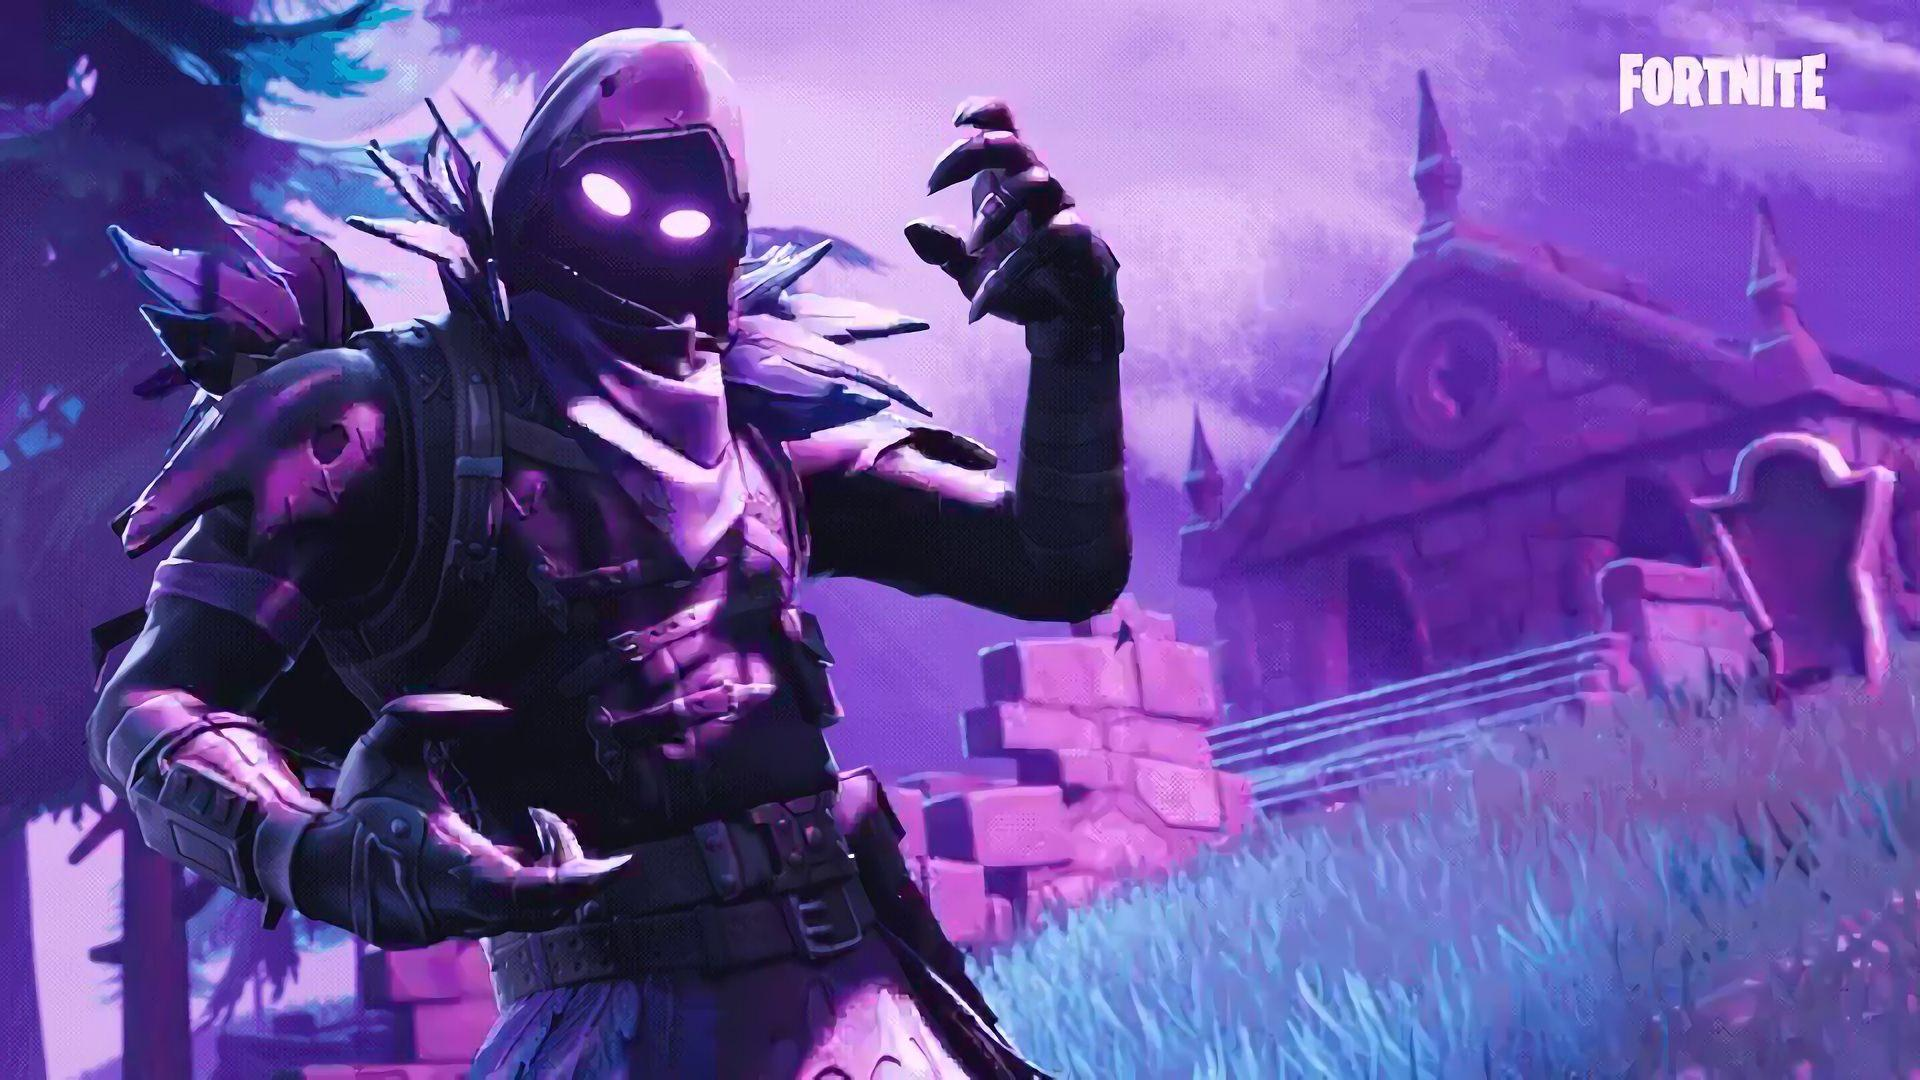 Raven fortnite wallpapers wallpaper cave - 4k fortnite wallpaper ...